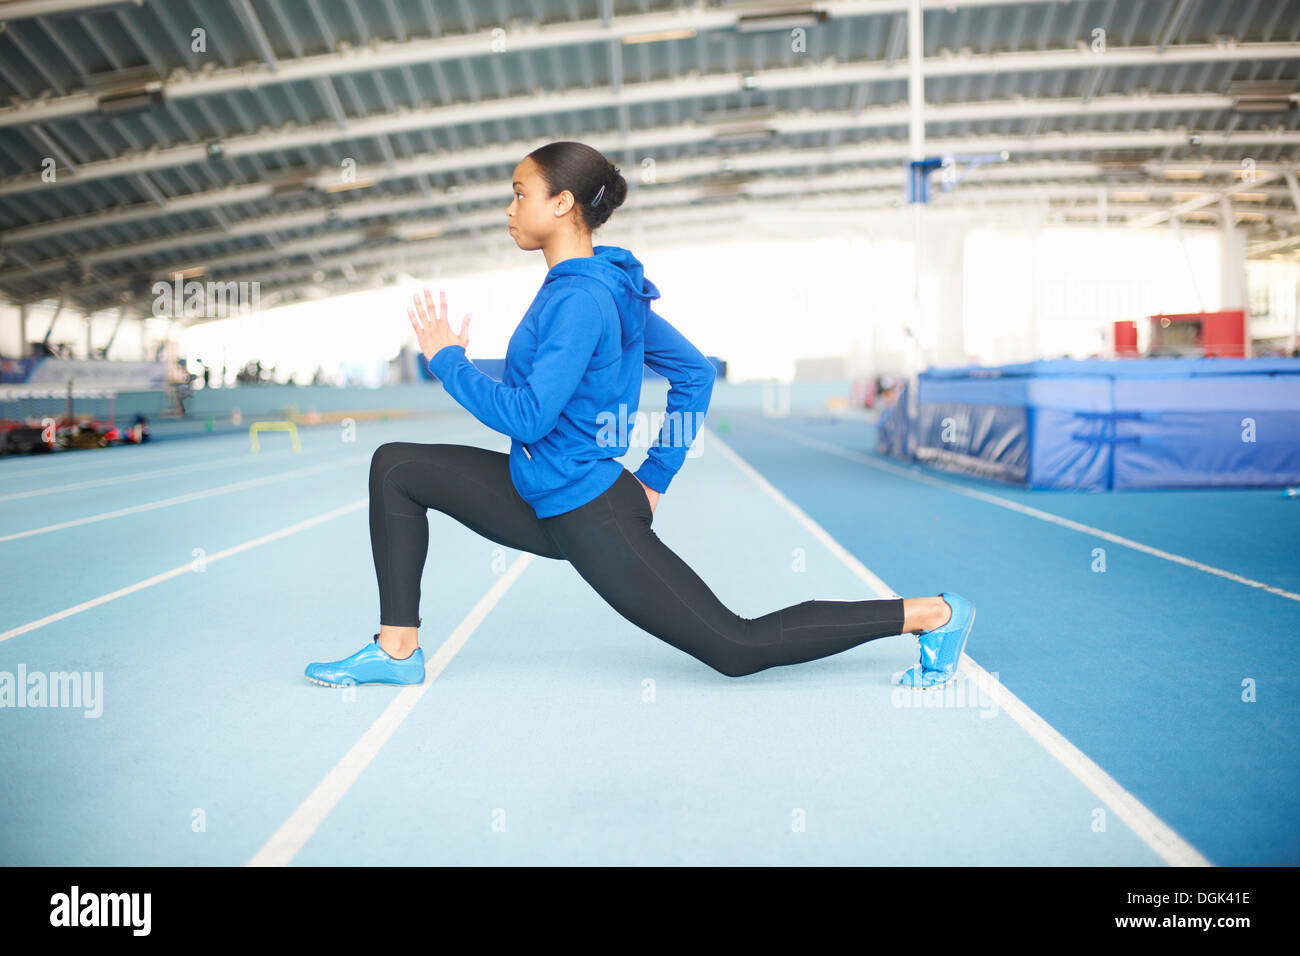 Young female athlete lunging - Stock Image